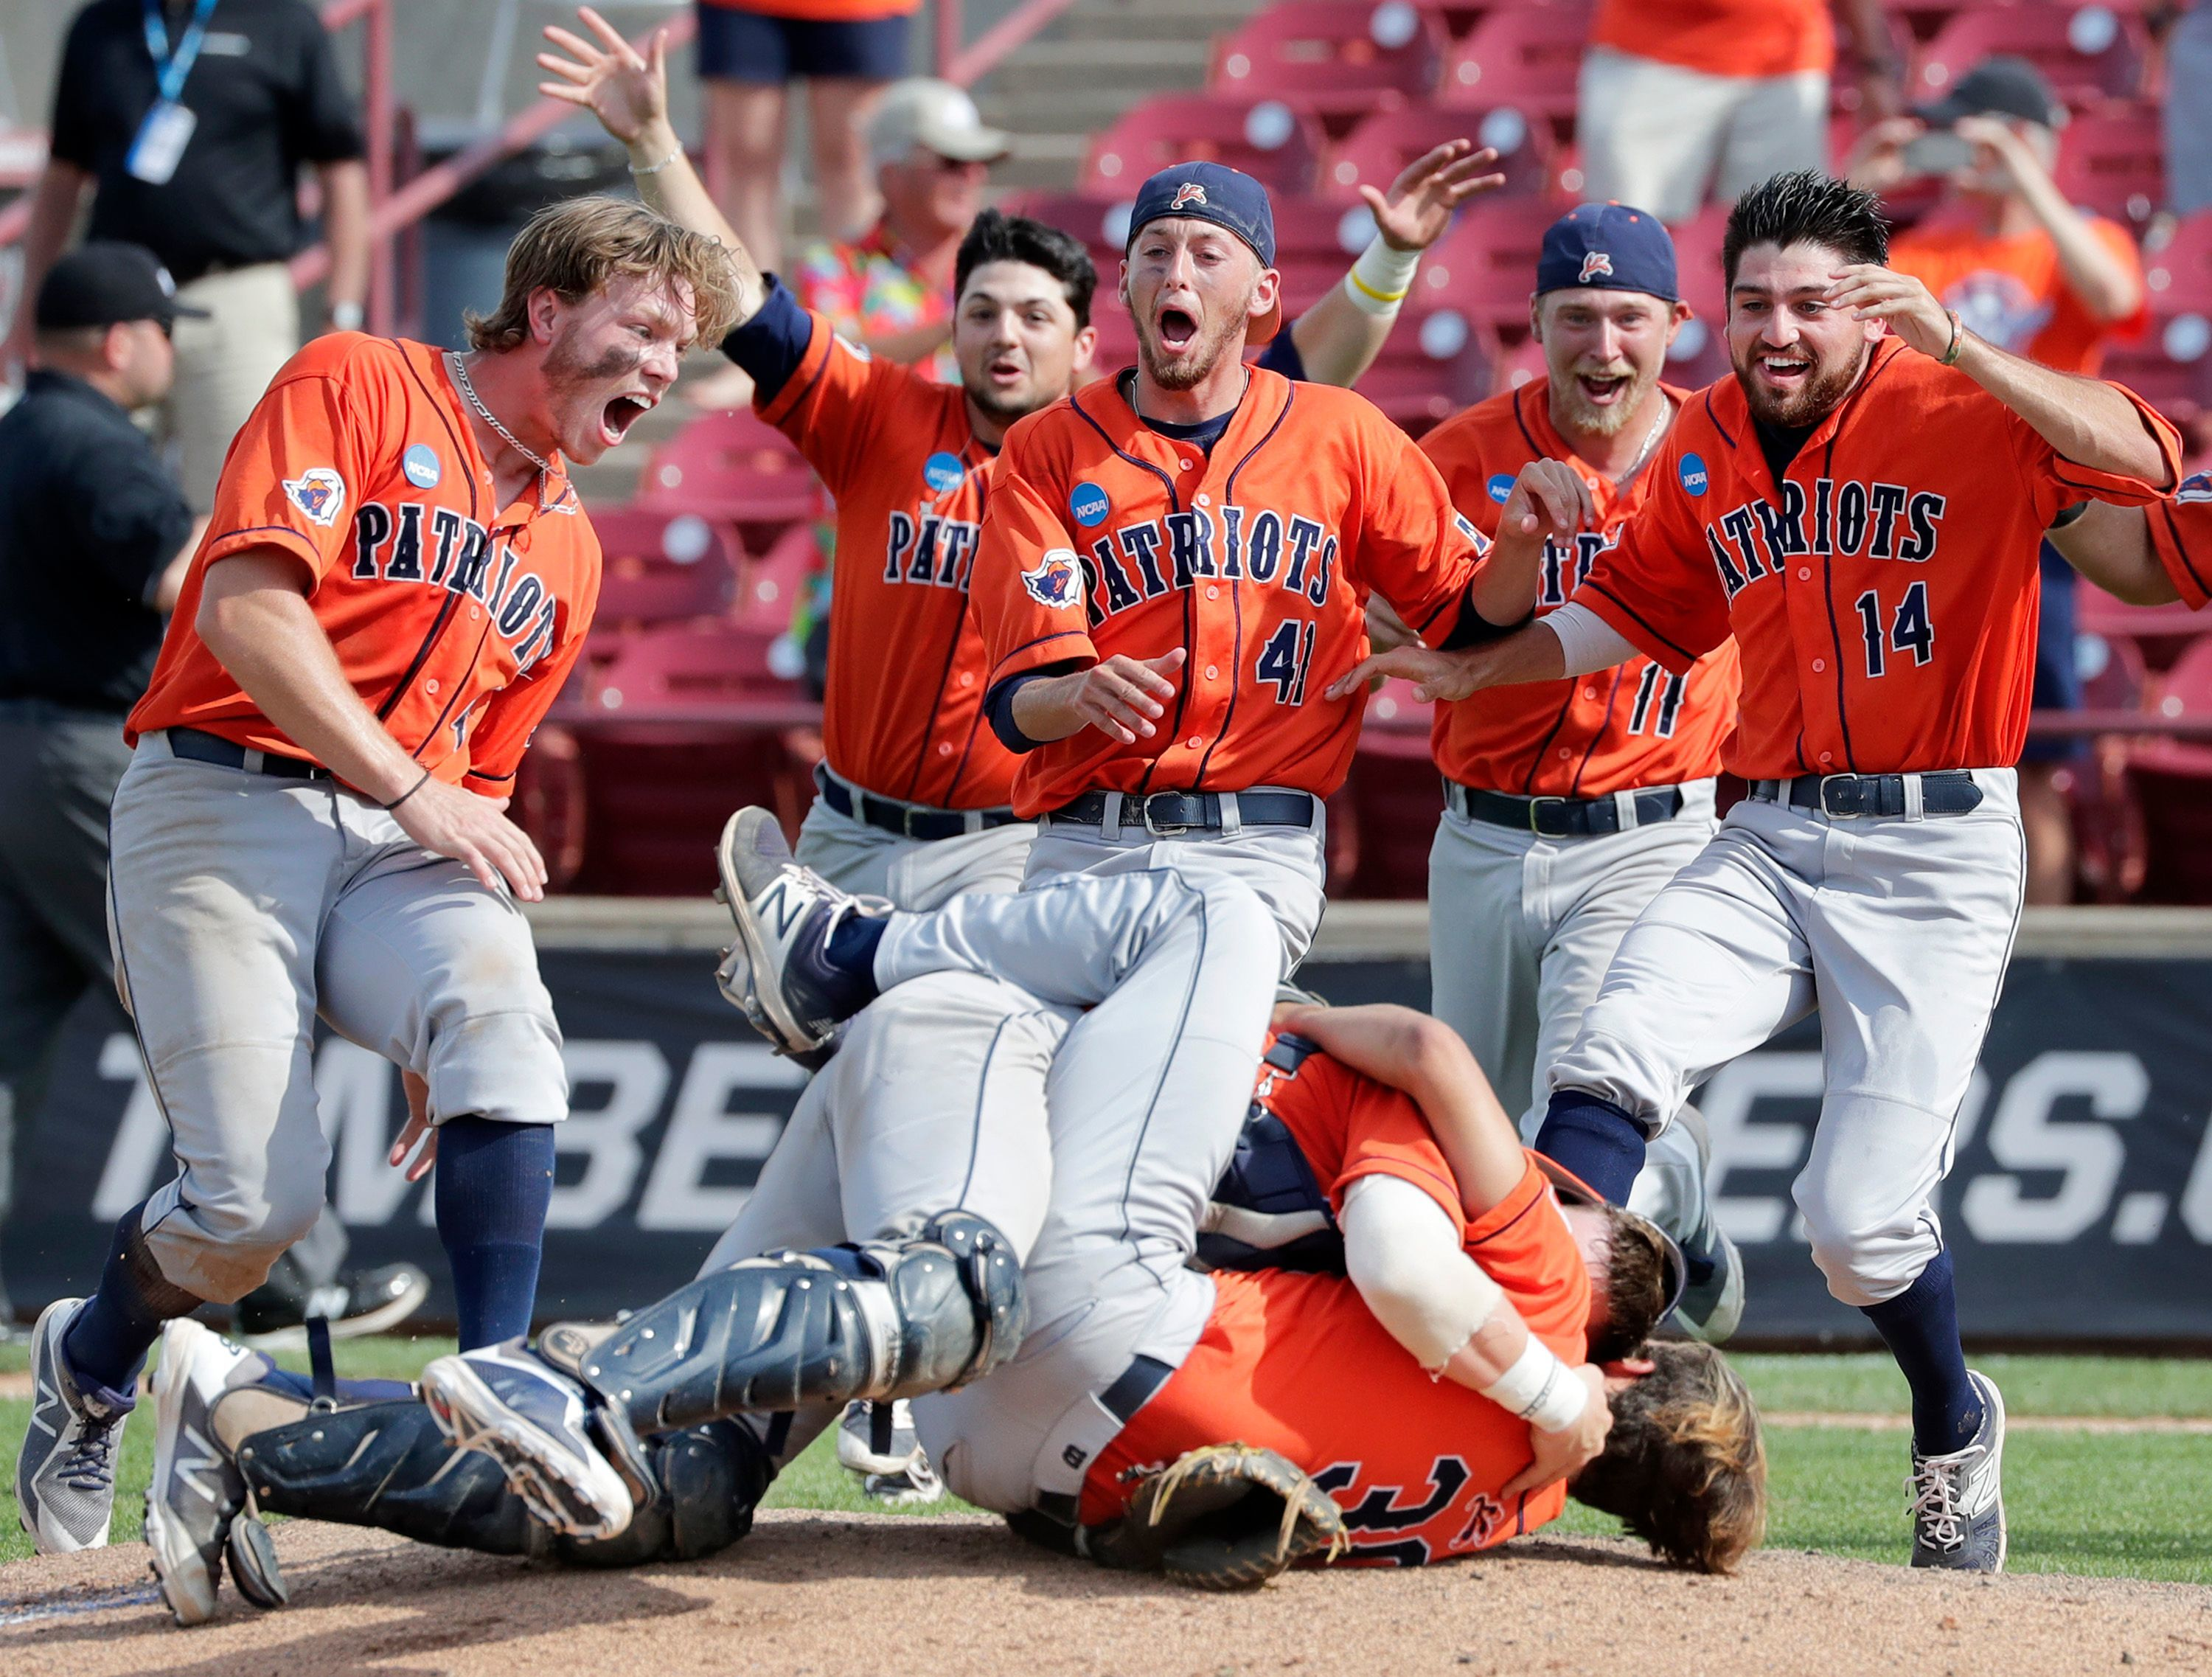 The University of Texas at Tyler baseball team celebrates after beating Texas Lutheran University to win the NCAA Division III baseball championship Tuesday at Neuroscience Group Field at Fox Cities Stadium in Grand Chute.